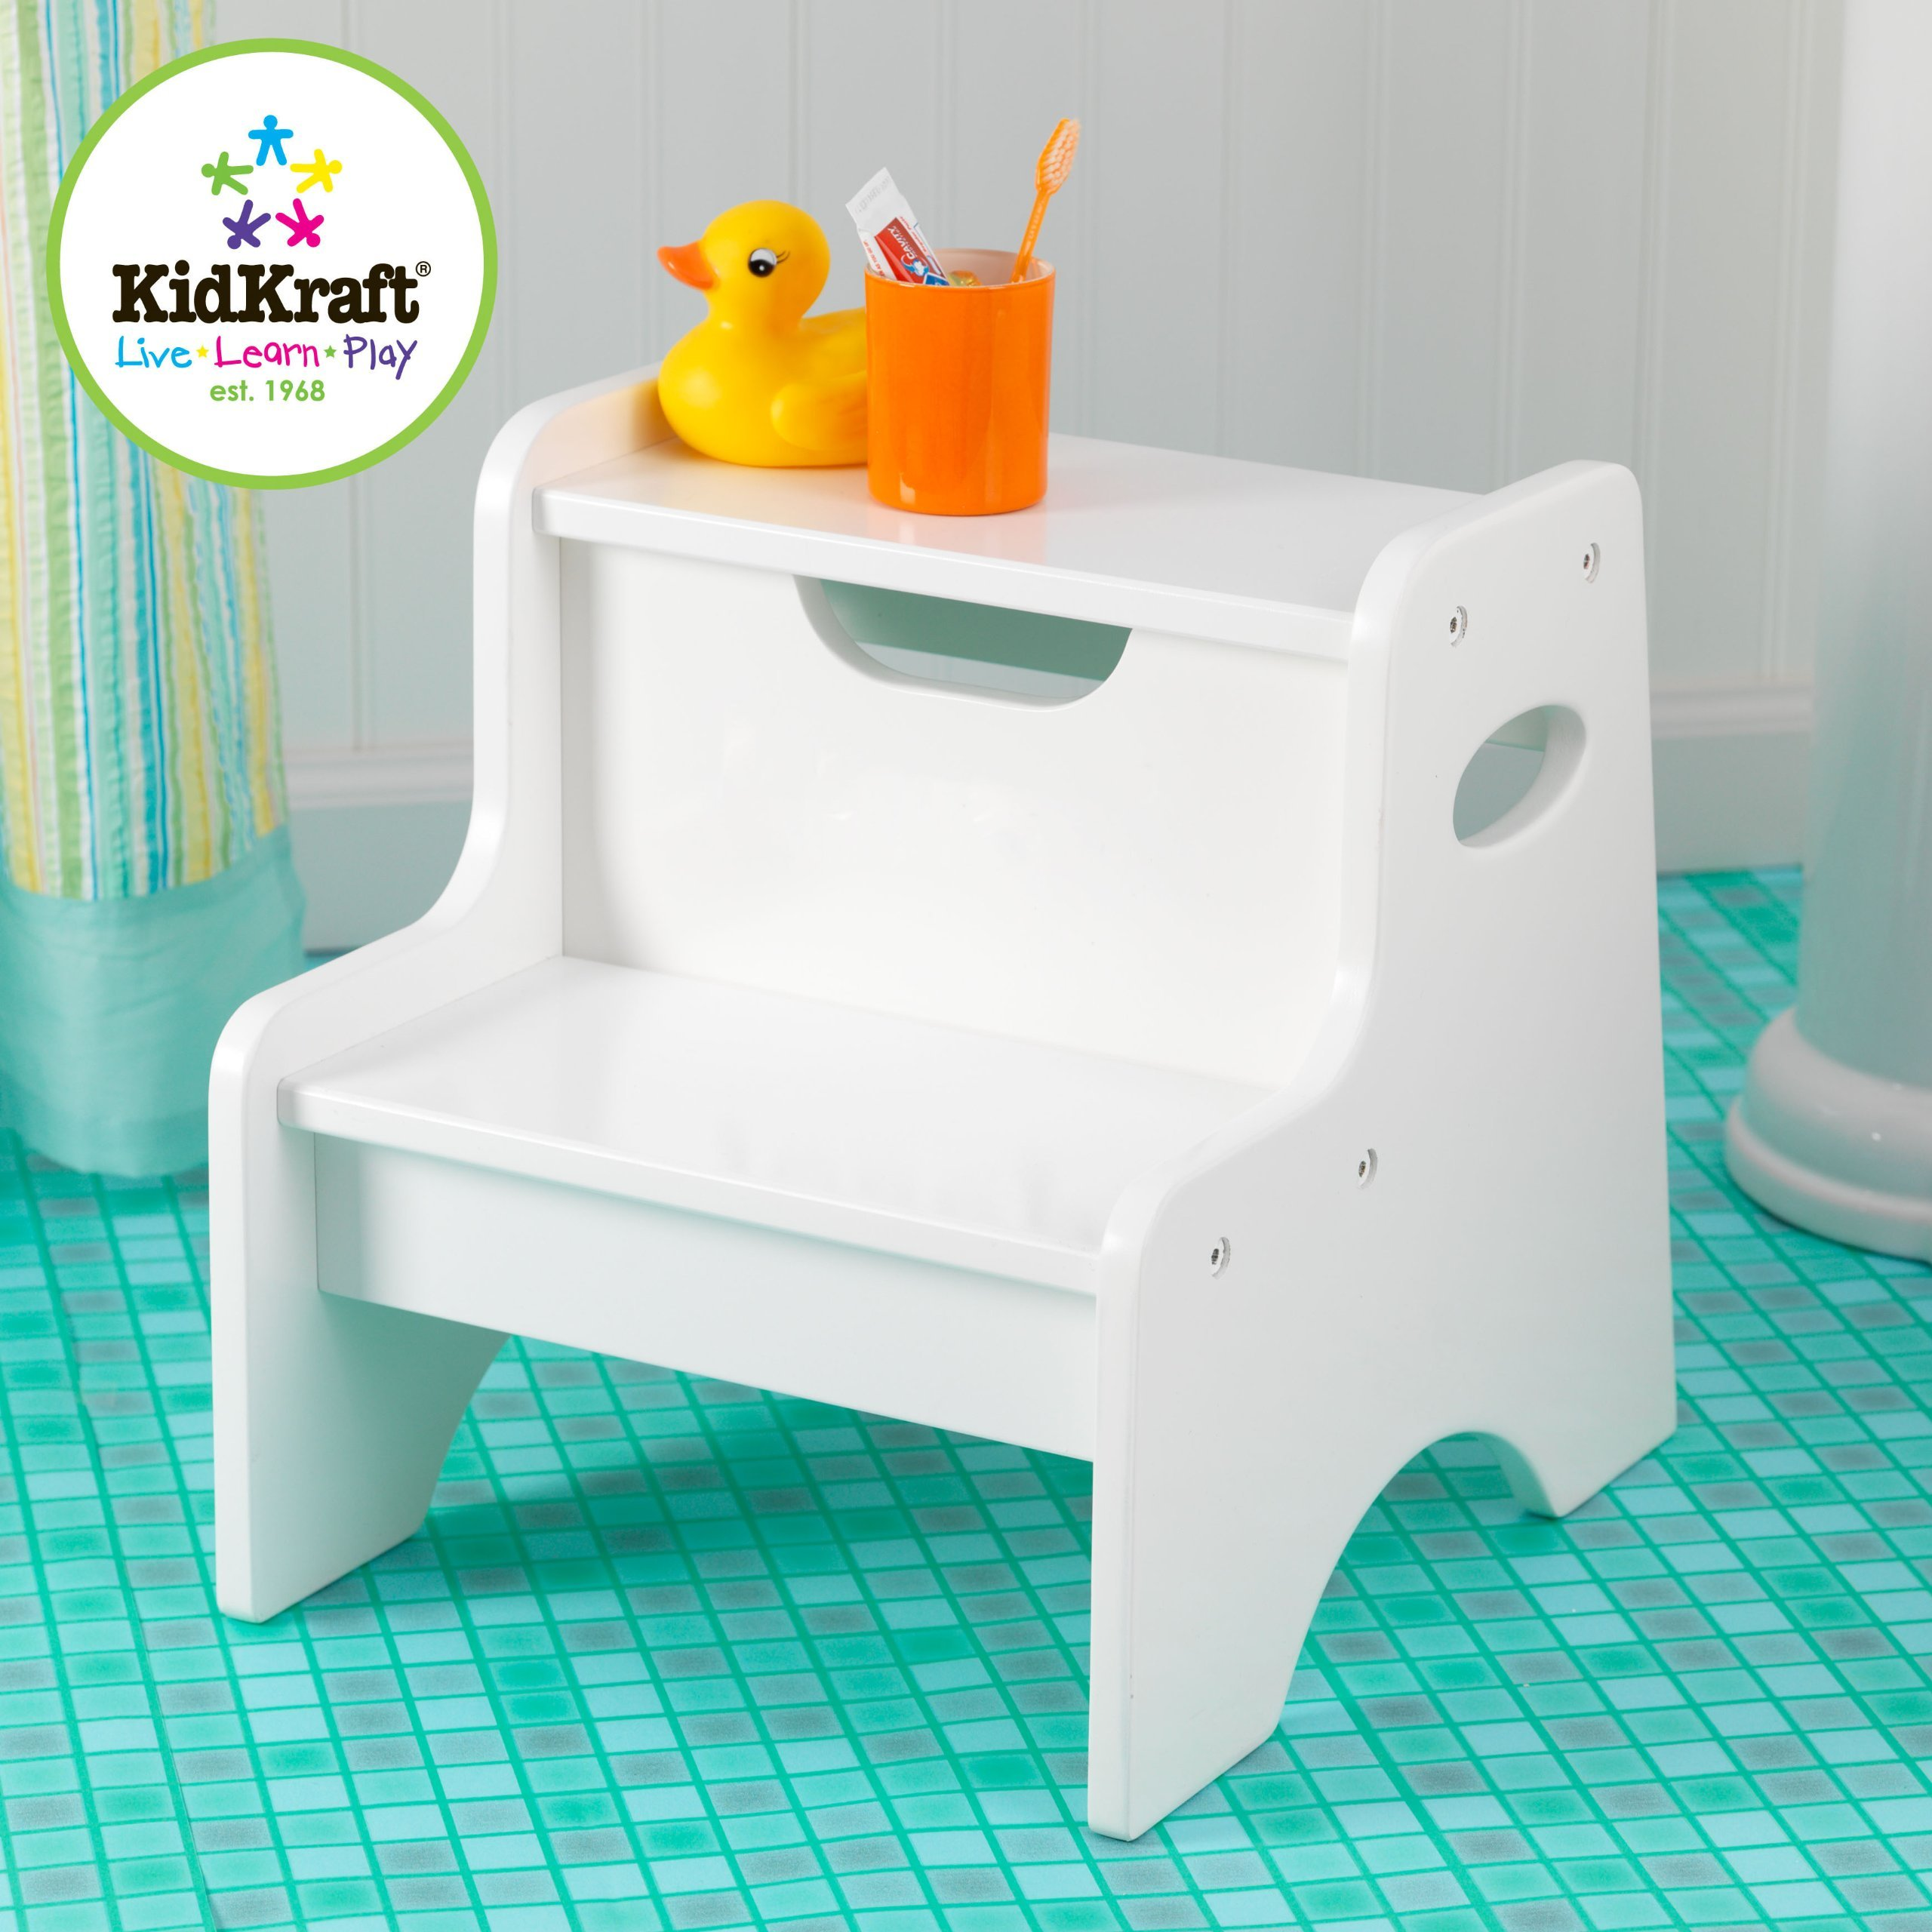 KidKraft Wooden Two Step Children's Stool with Handles- White (Renewed)